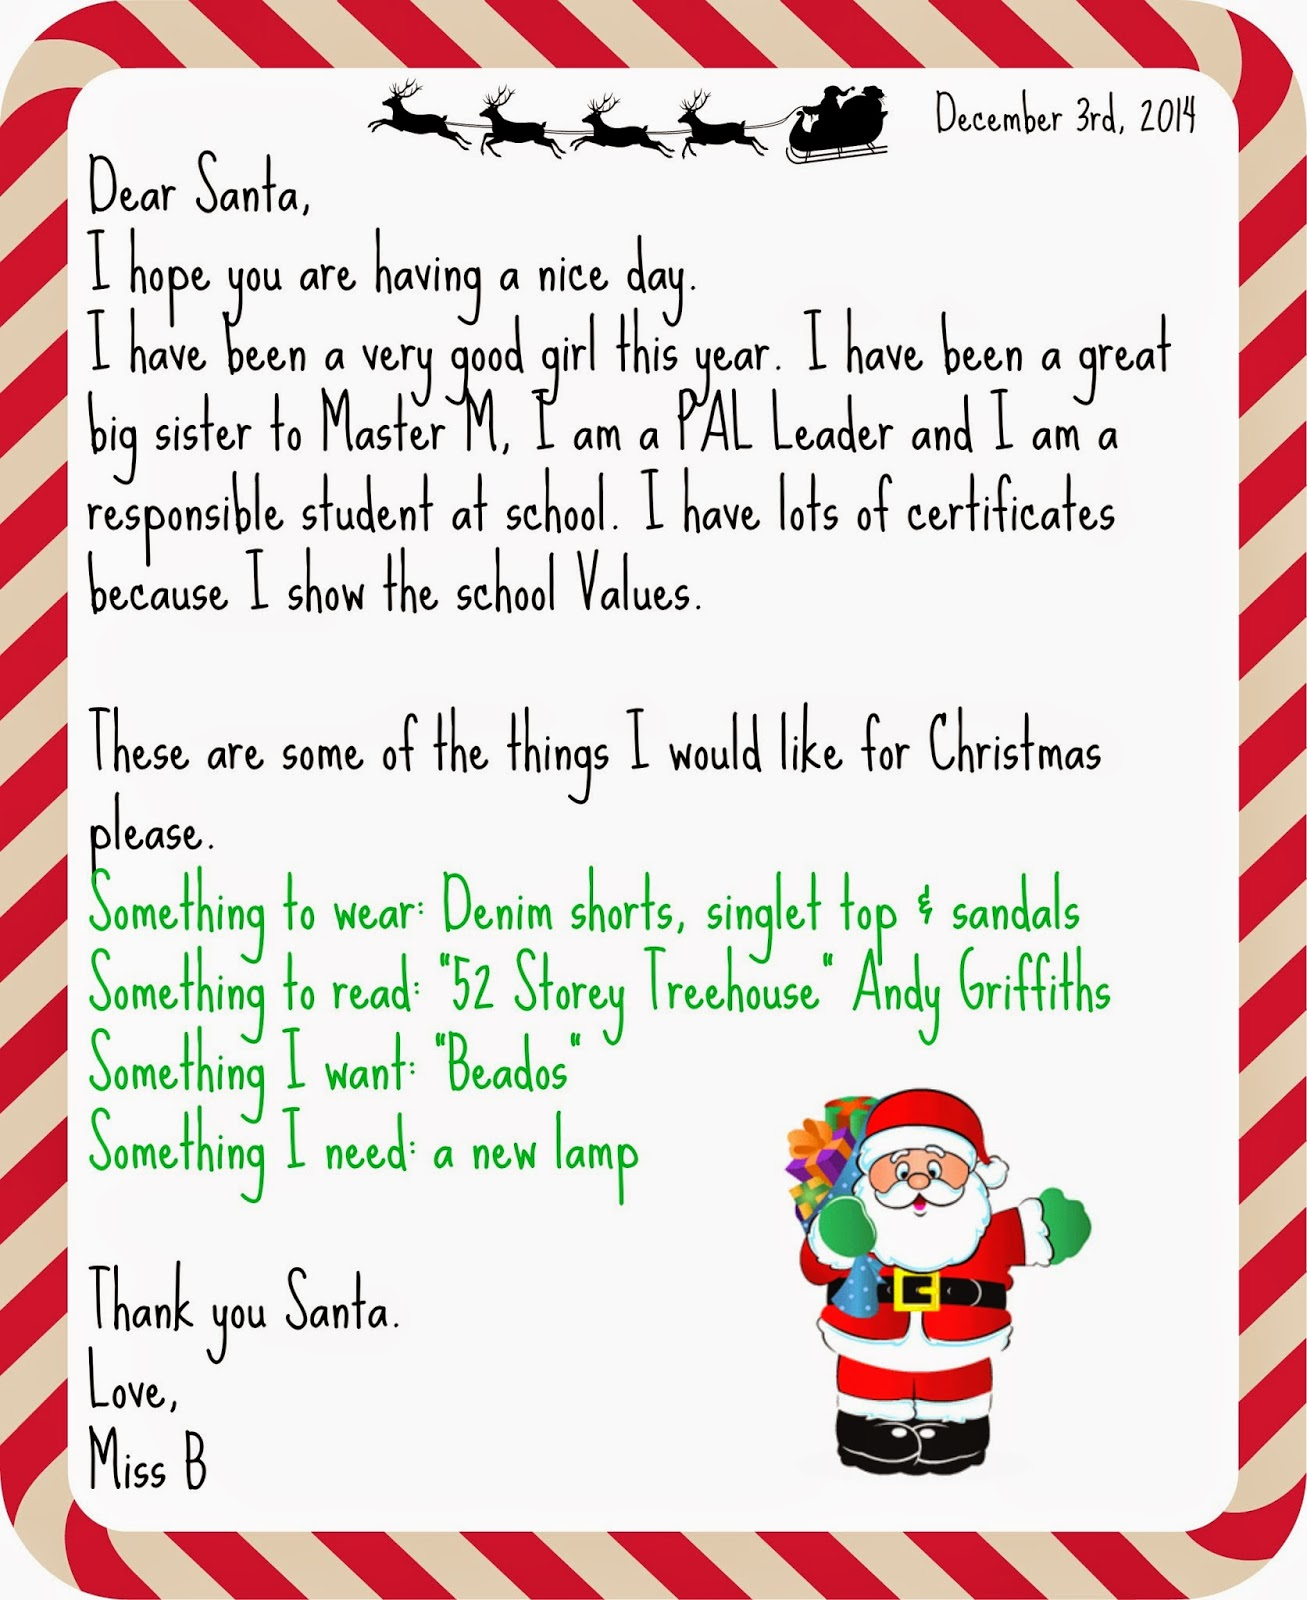 Advent calendar day 3 write a letter to santa teacher by trade check out her letter and the wish list that she has been working on for a couple of months now and is still adding to it spiritdancerdesigns Images